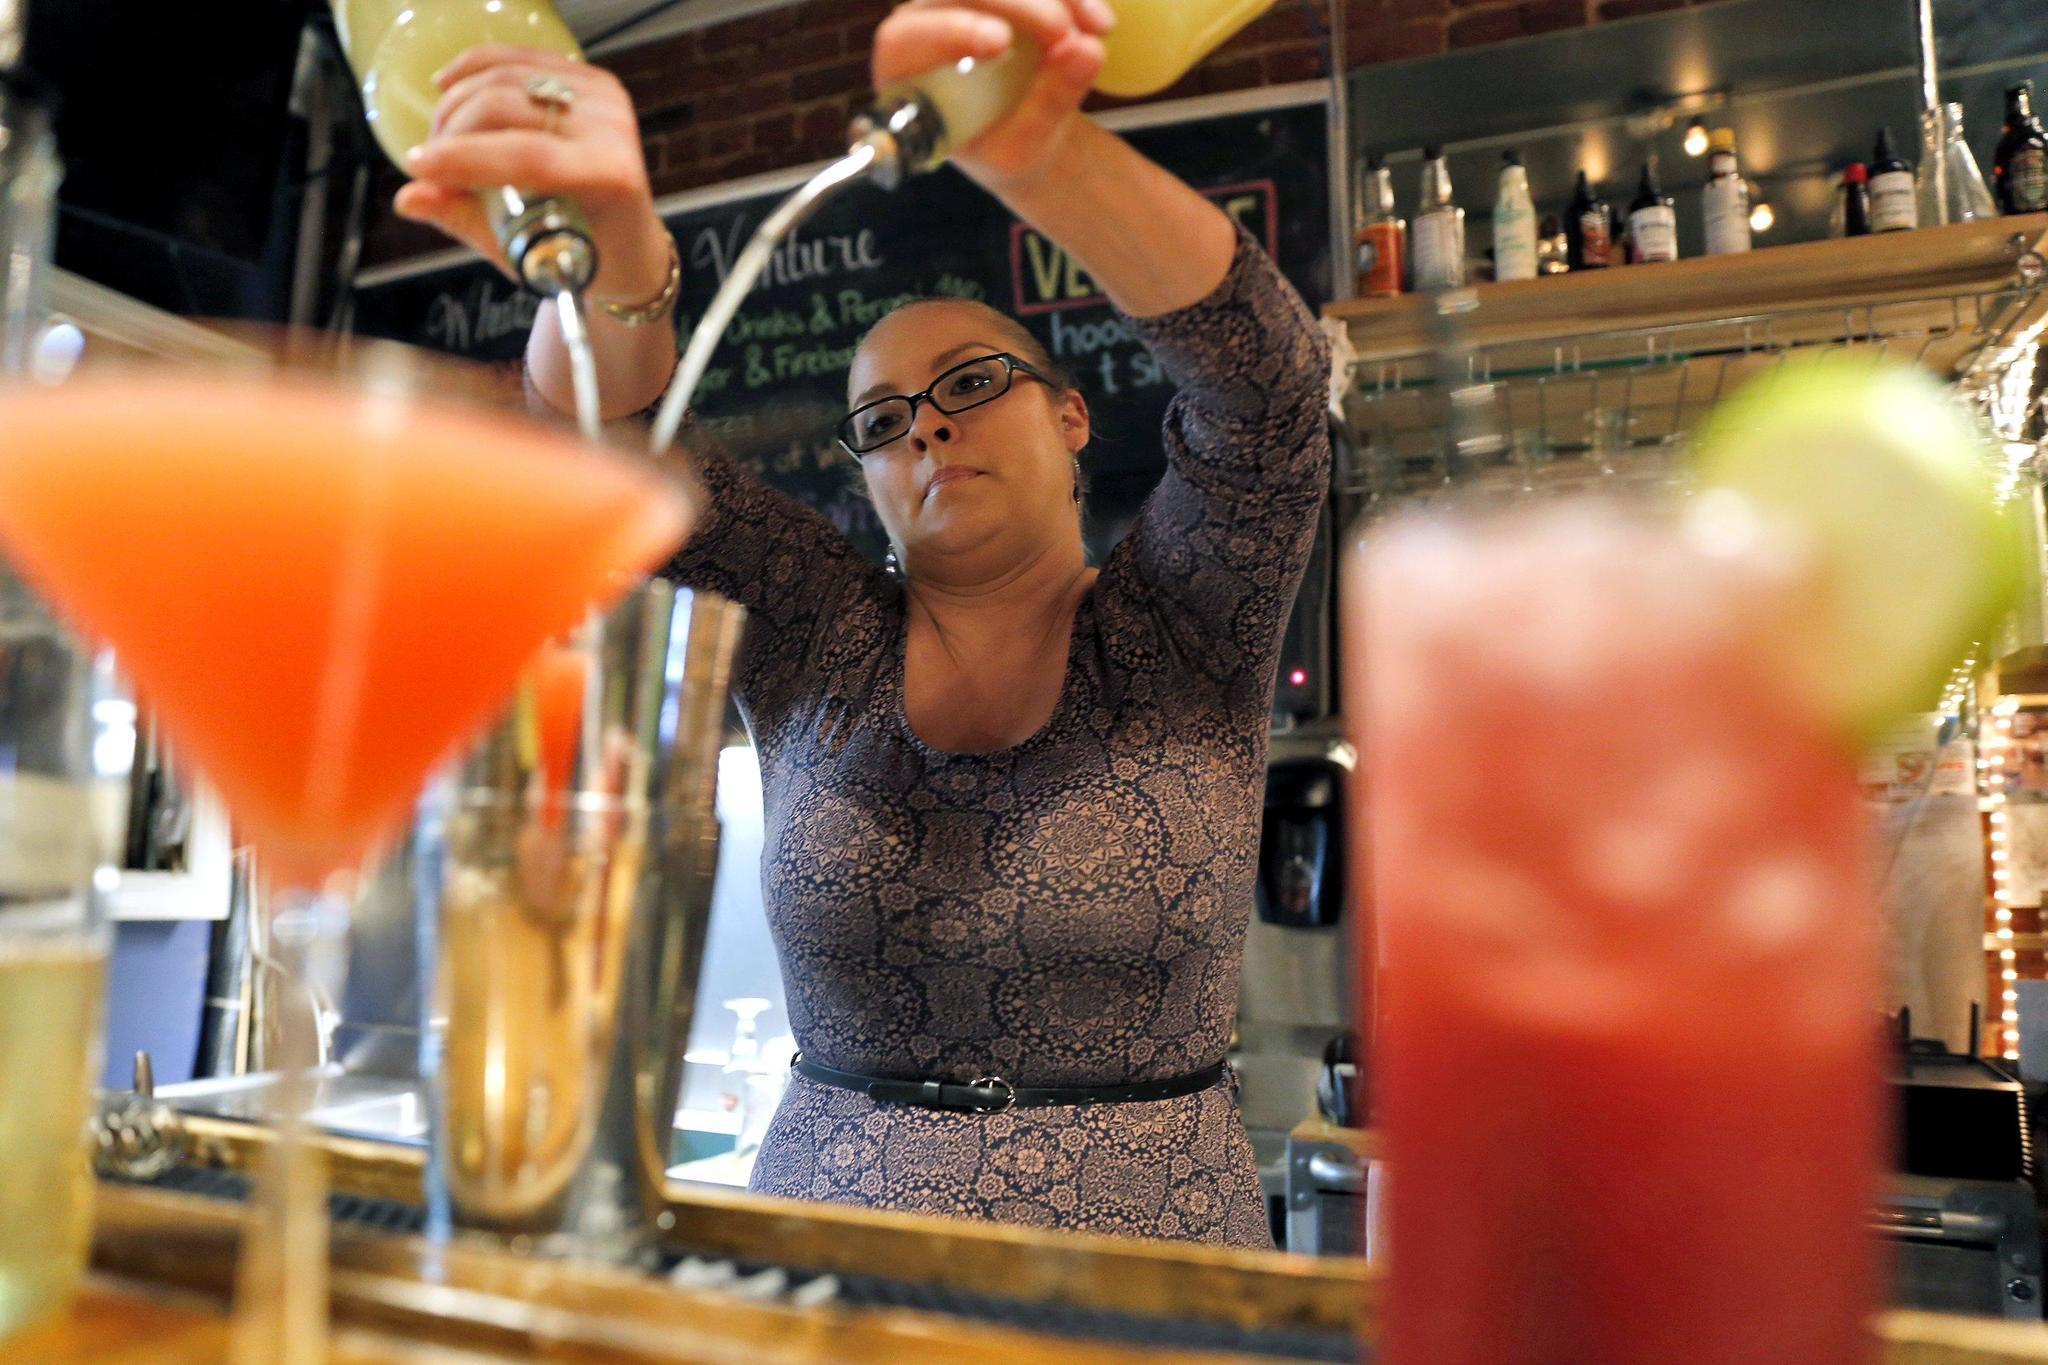 Store liquor sales up in hampton roads as cocktail for Craft shows in hampton roads